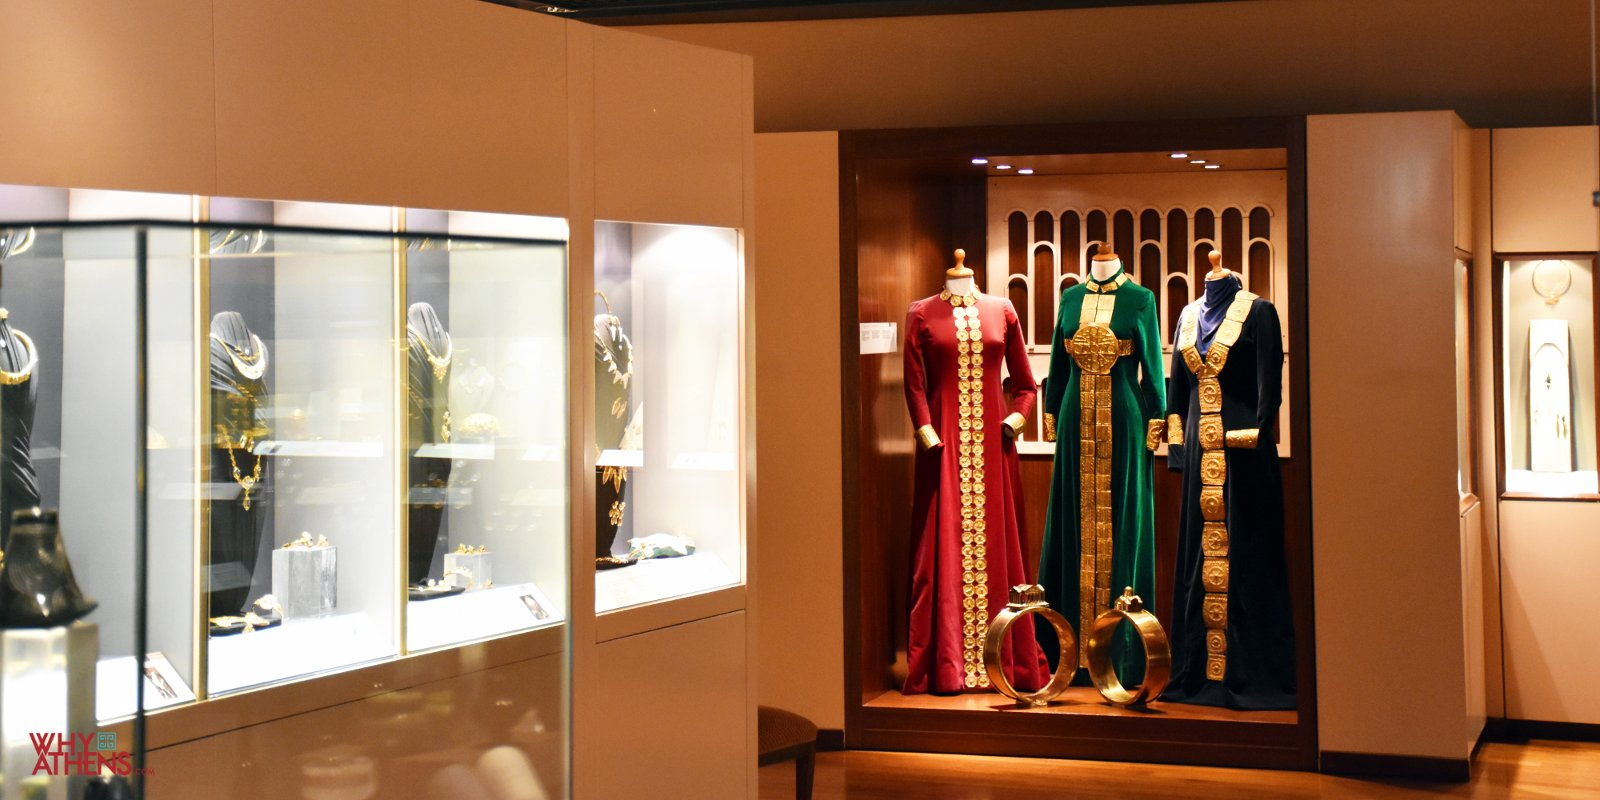 Inside the lias Lalaounis Jewelry Museum, you can find   over 4000 pieces of jewelry and microsculptures, designed between 1940 and 2000 by the museum's founder.